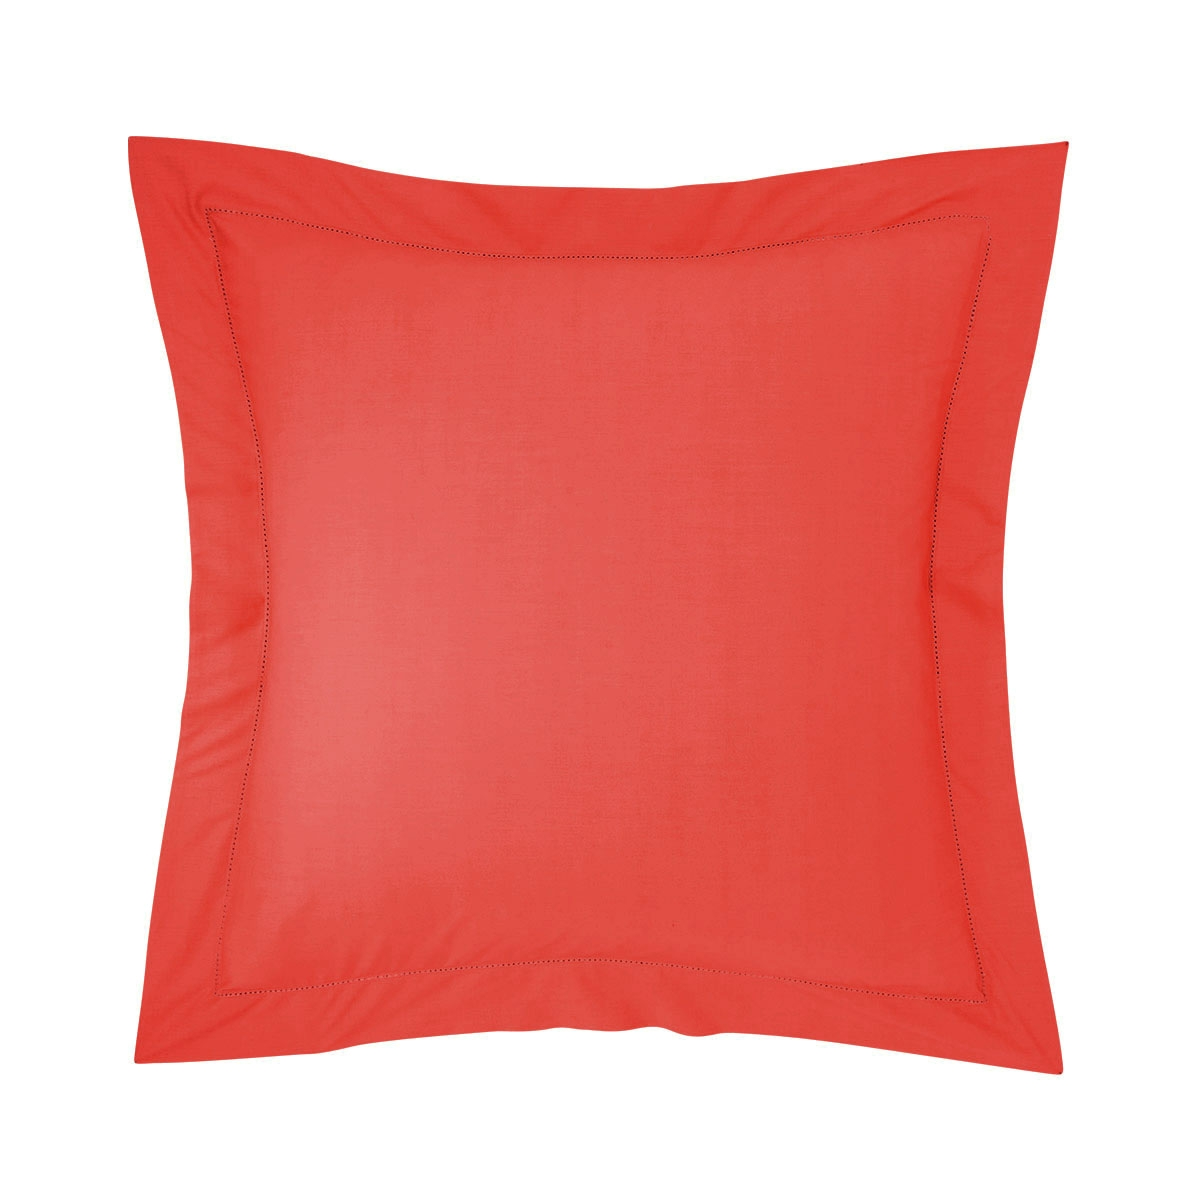 Taie d'oreiller percale Rouge 65 x 65 cm